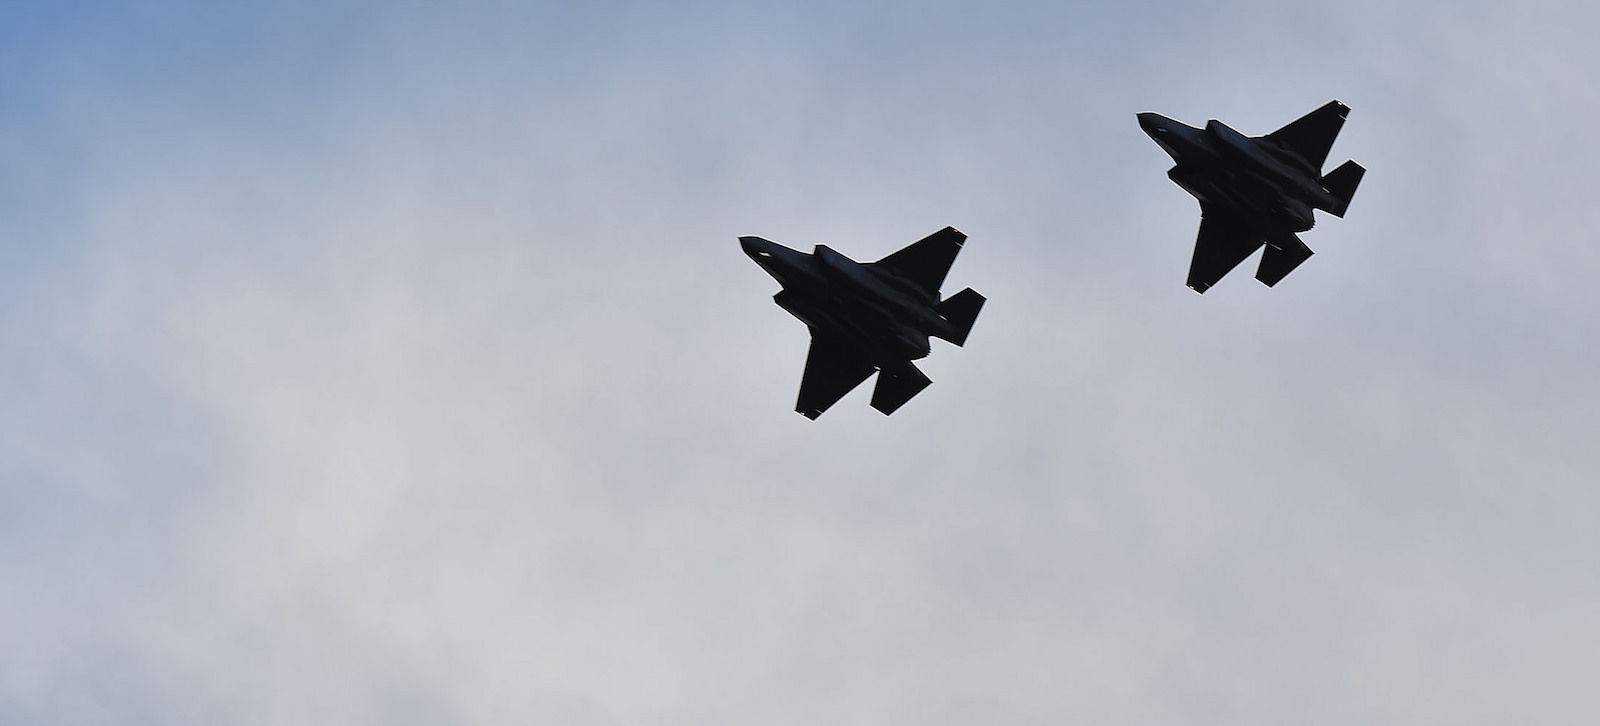 Fly-by of the Norwegian F-35 Joint Strike Fighter aircraft (Photo: NATO/Flickr)